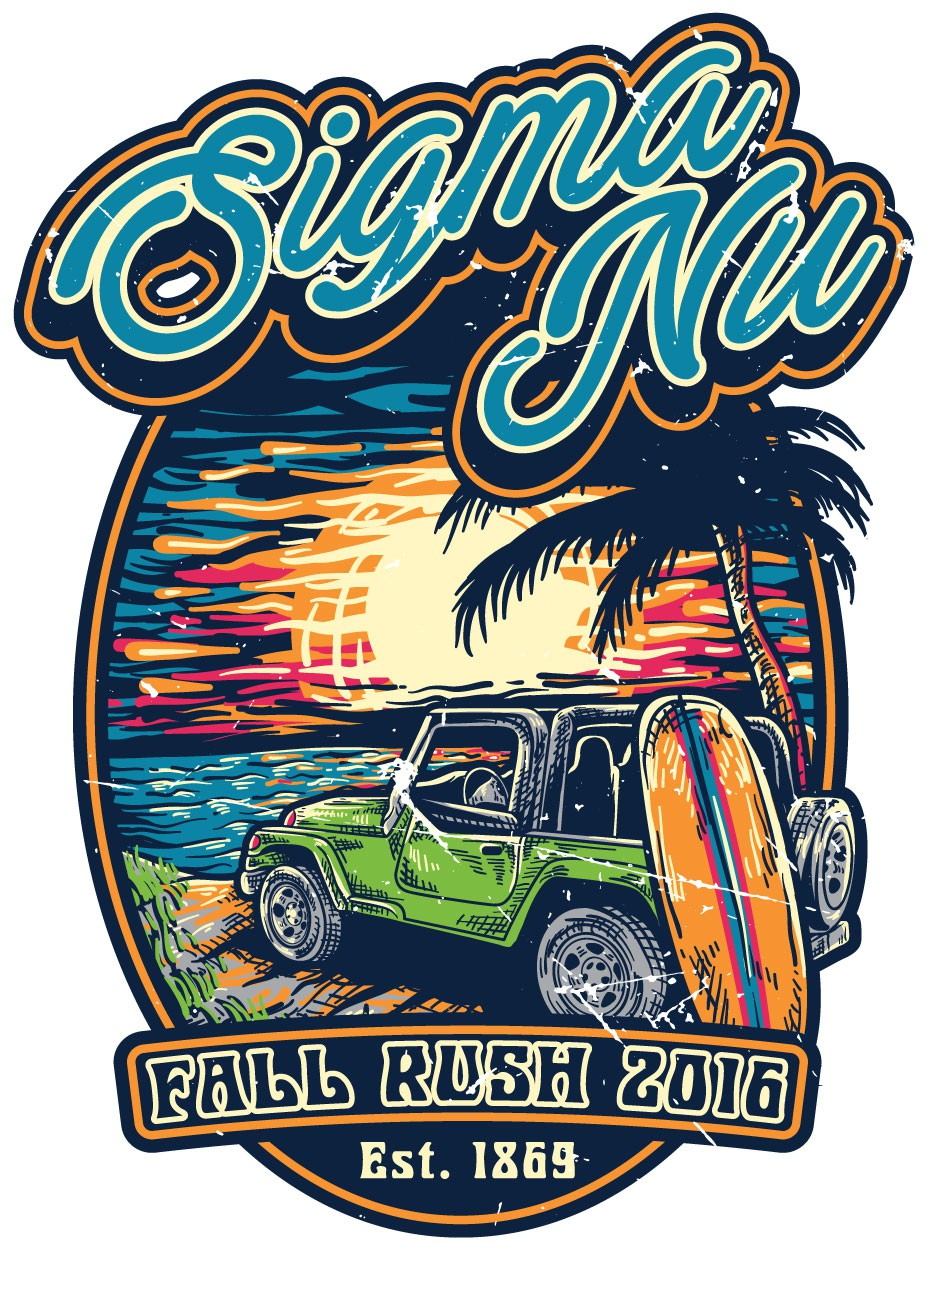 Create a illustrative colorful vintage beach design for fraternity college students.